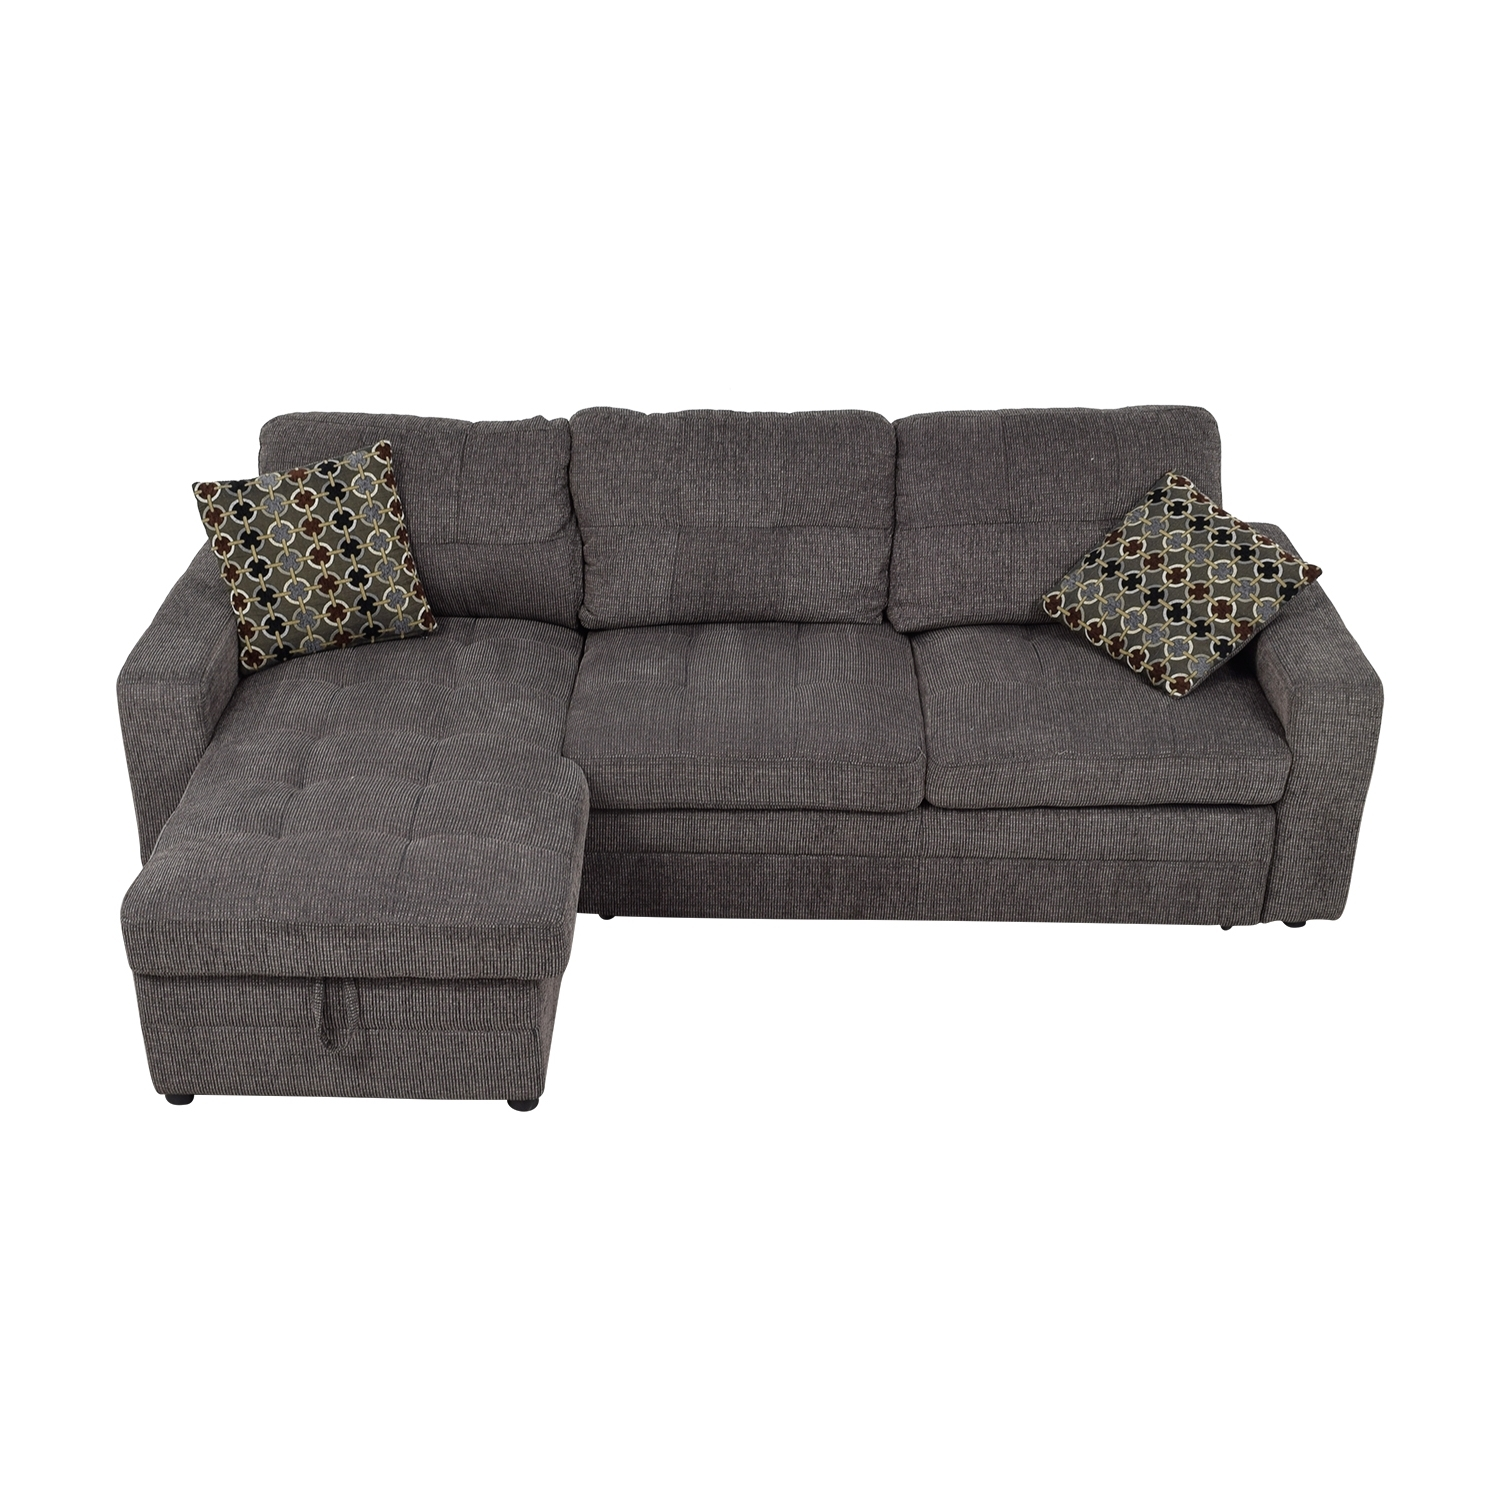 Used Sectional Sofas With Regard To Trendy Sectionals: Used Sectionals For Sale (View 7 of 20)